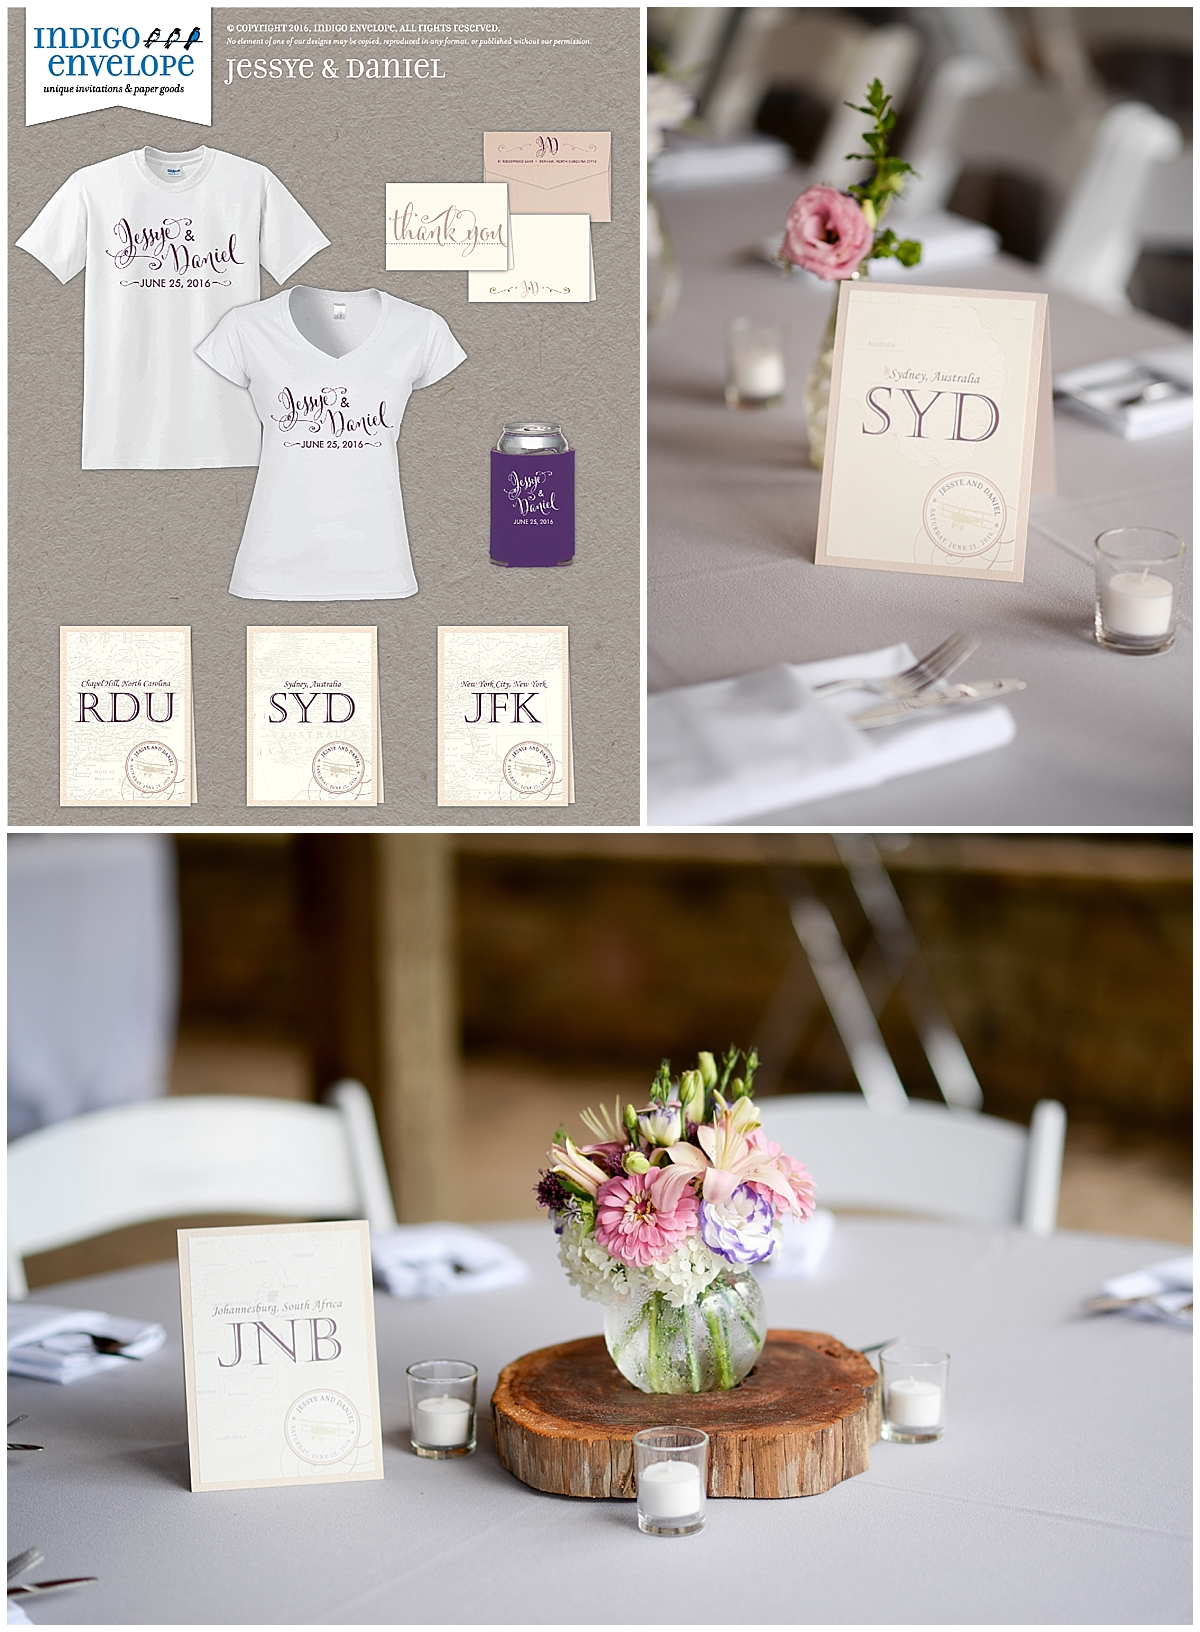 Indigo Envelope Typography Focused Details in Blush